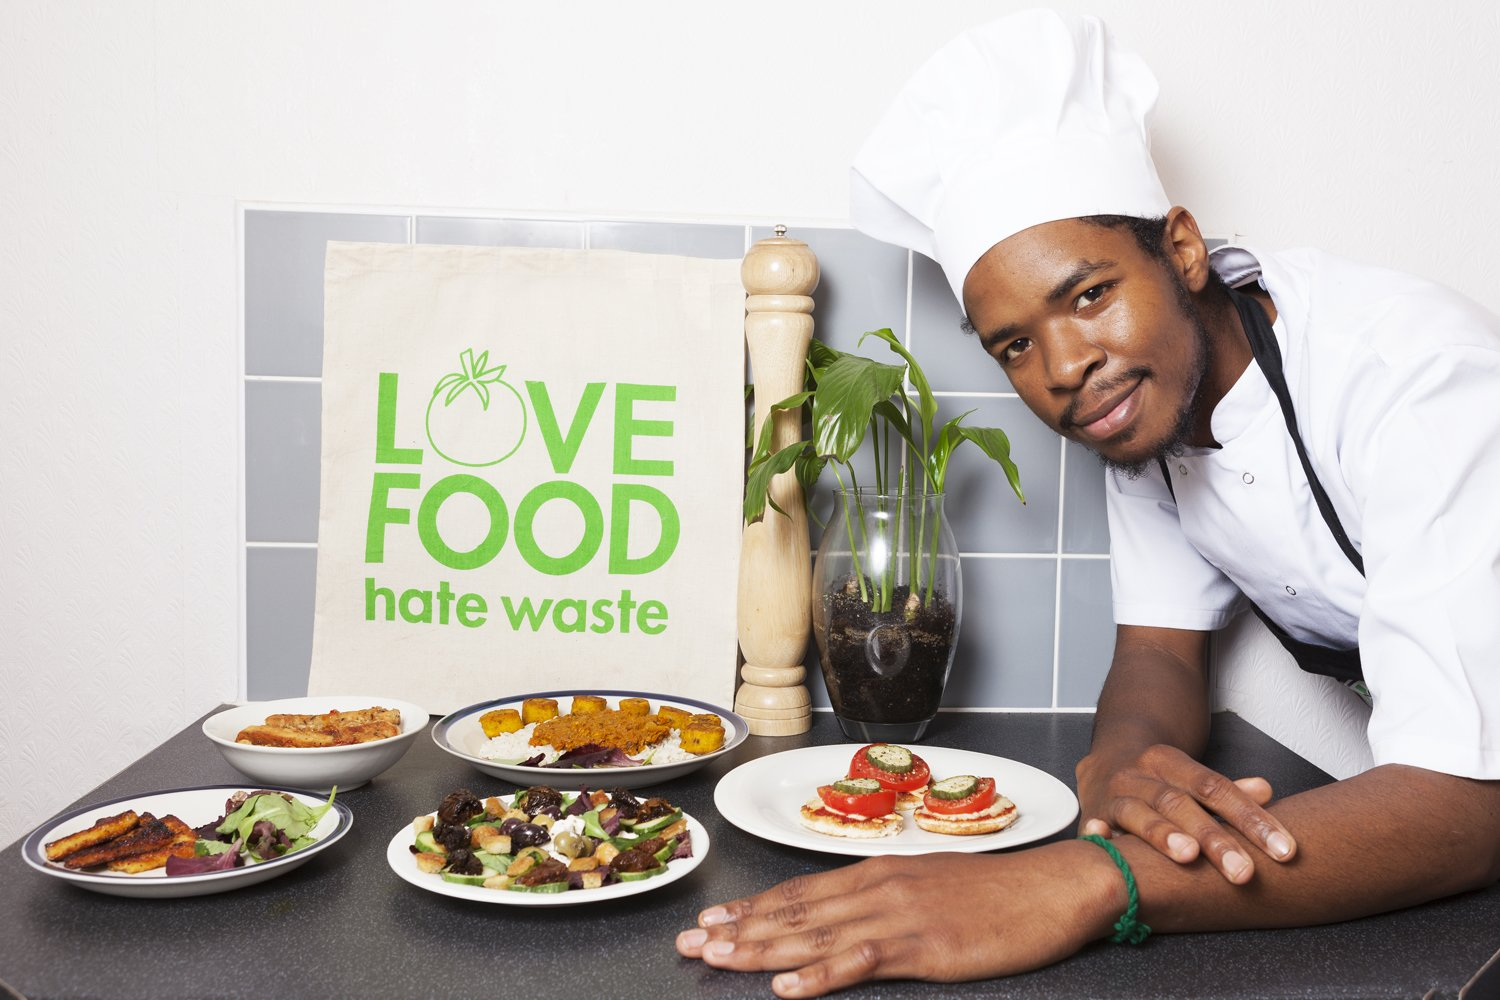 Chef Shane Jordan Believes Recipes Should Evolve to Provide Advice on Reducing Food Waste